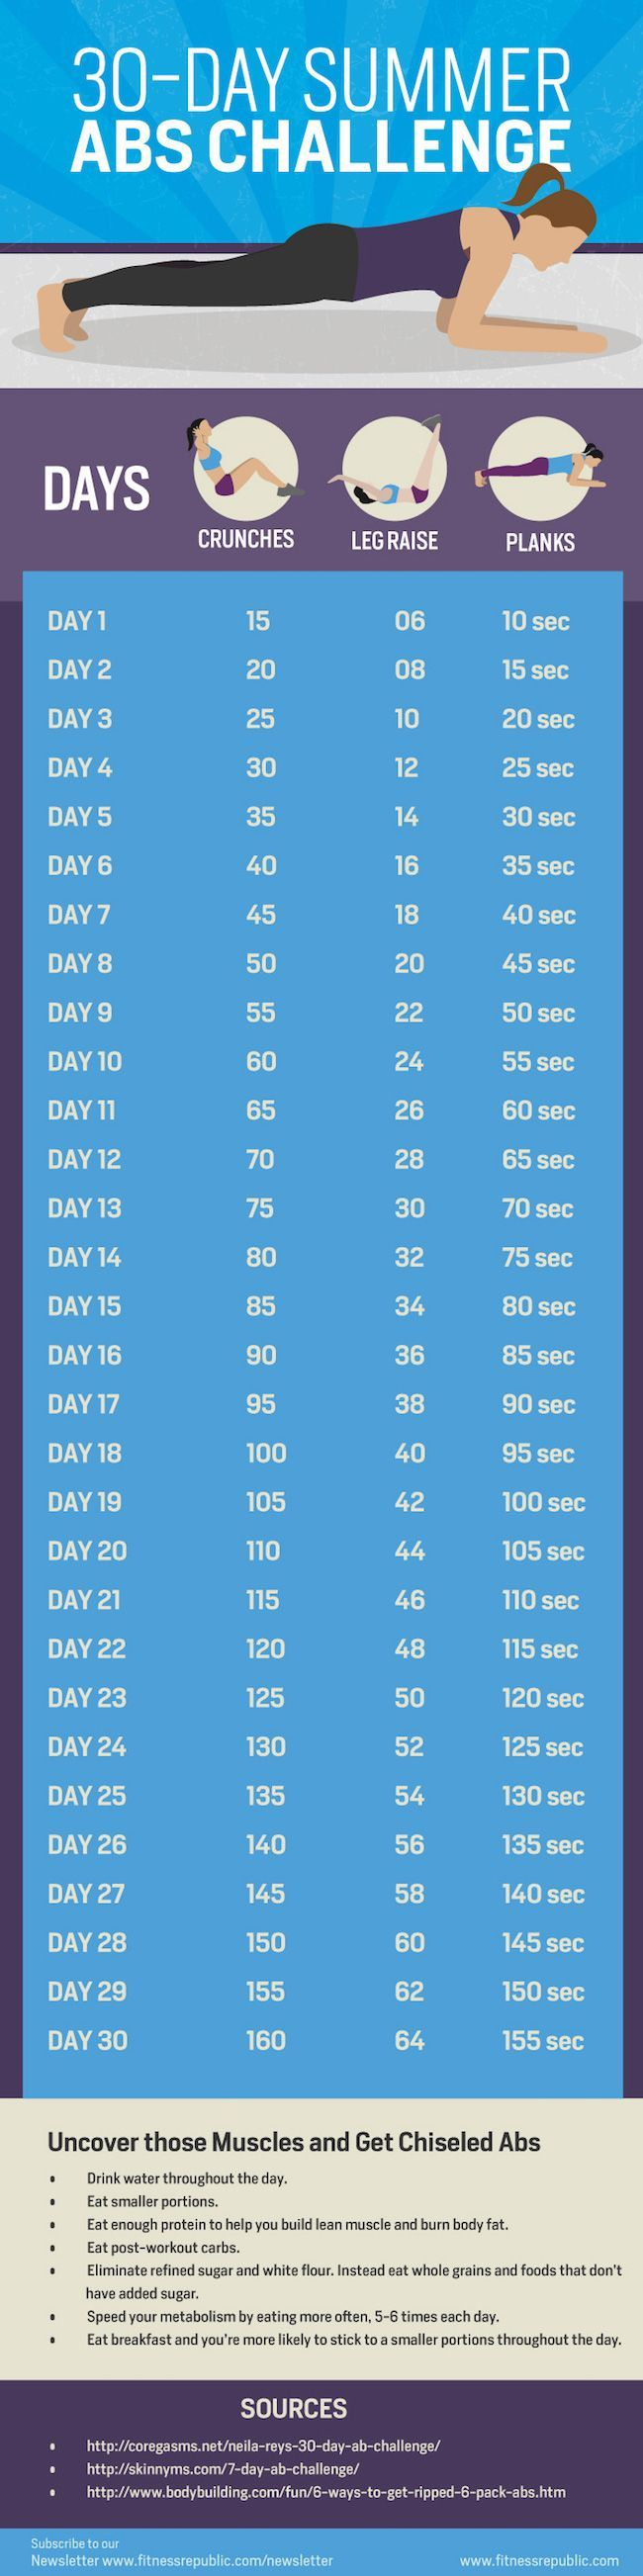 did you lose weight on 3 day diet